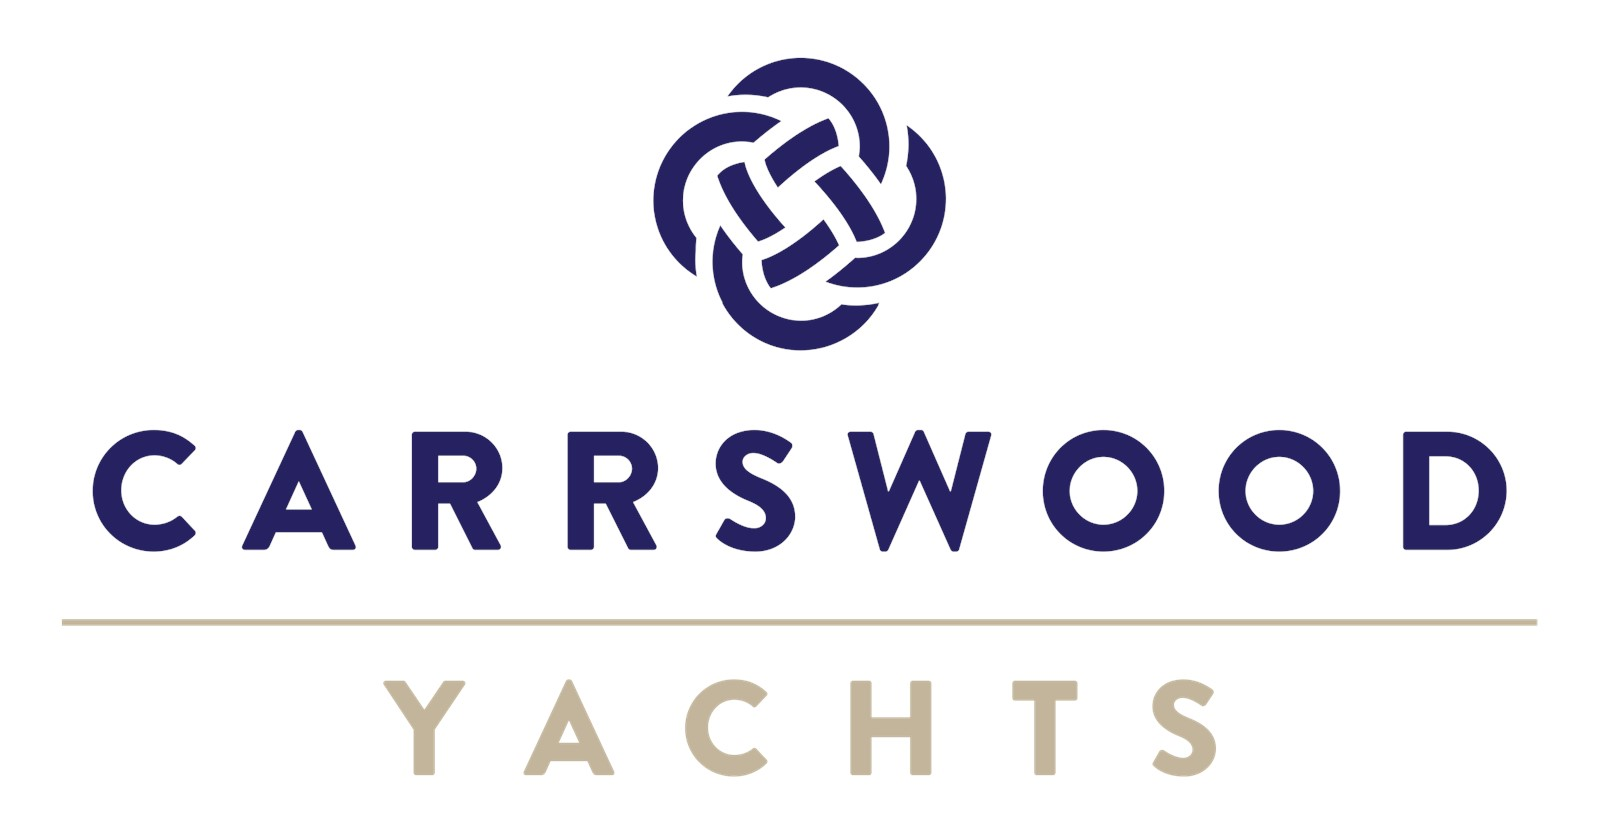 Carrswood Yachts